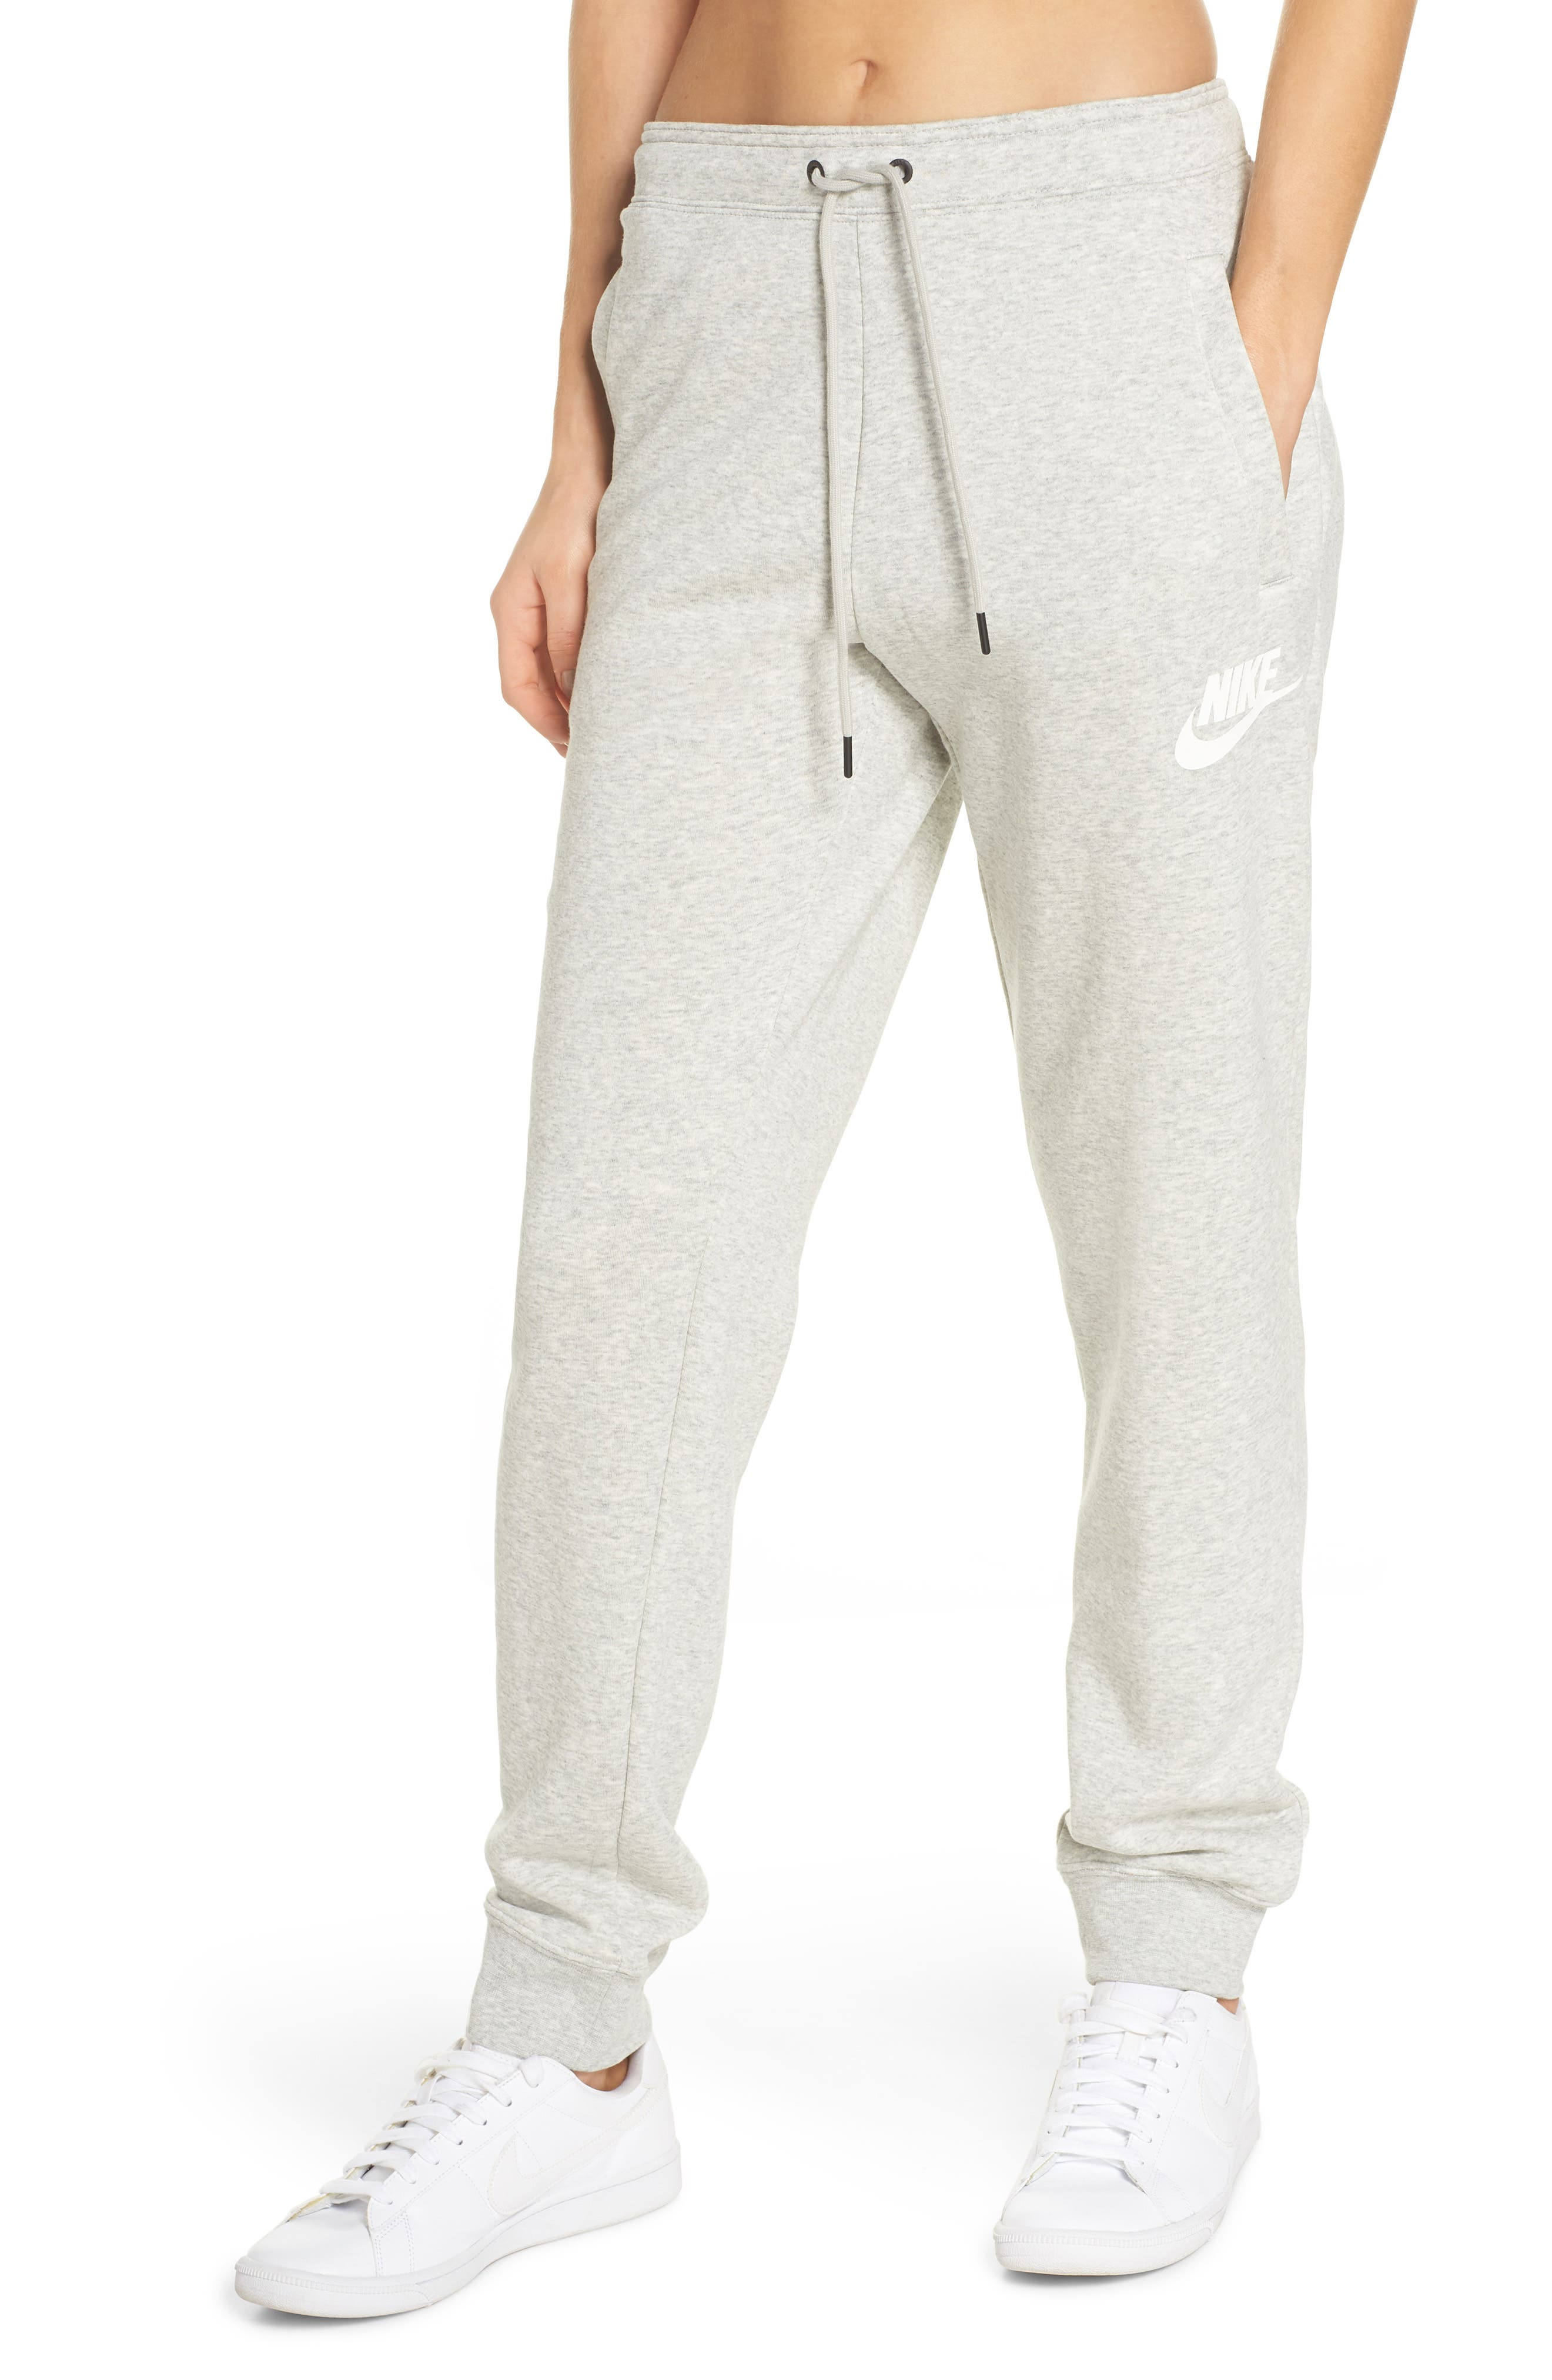 NIKE, Sportswear Rally Jogger Pants, Main thumbnail 1, color, GREY HEATHER/ PALE GREY/ WHITE